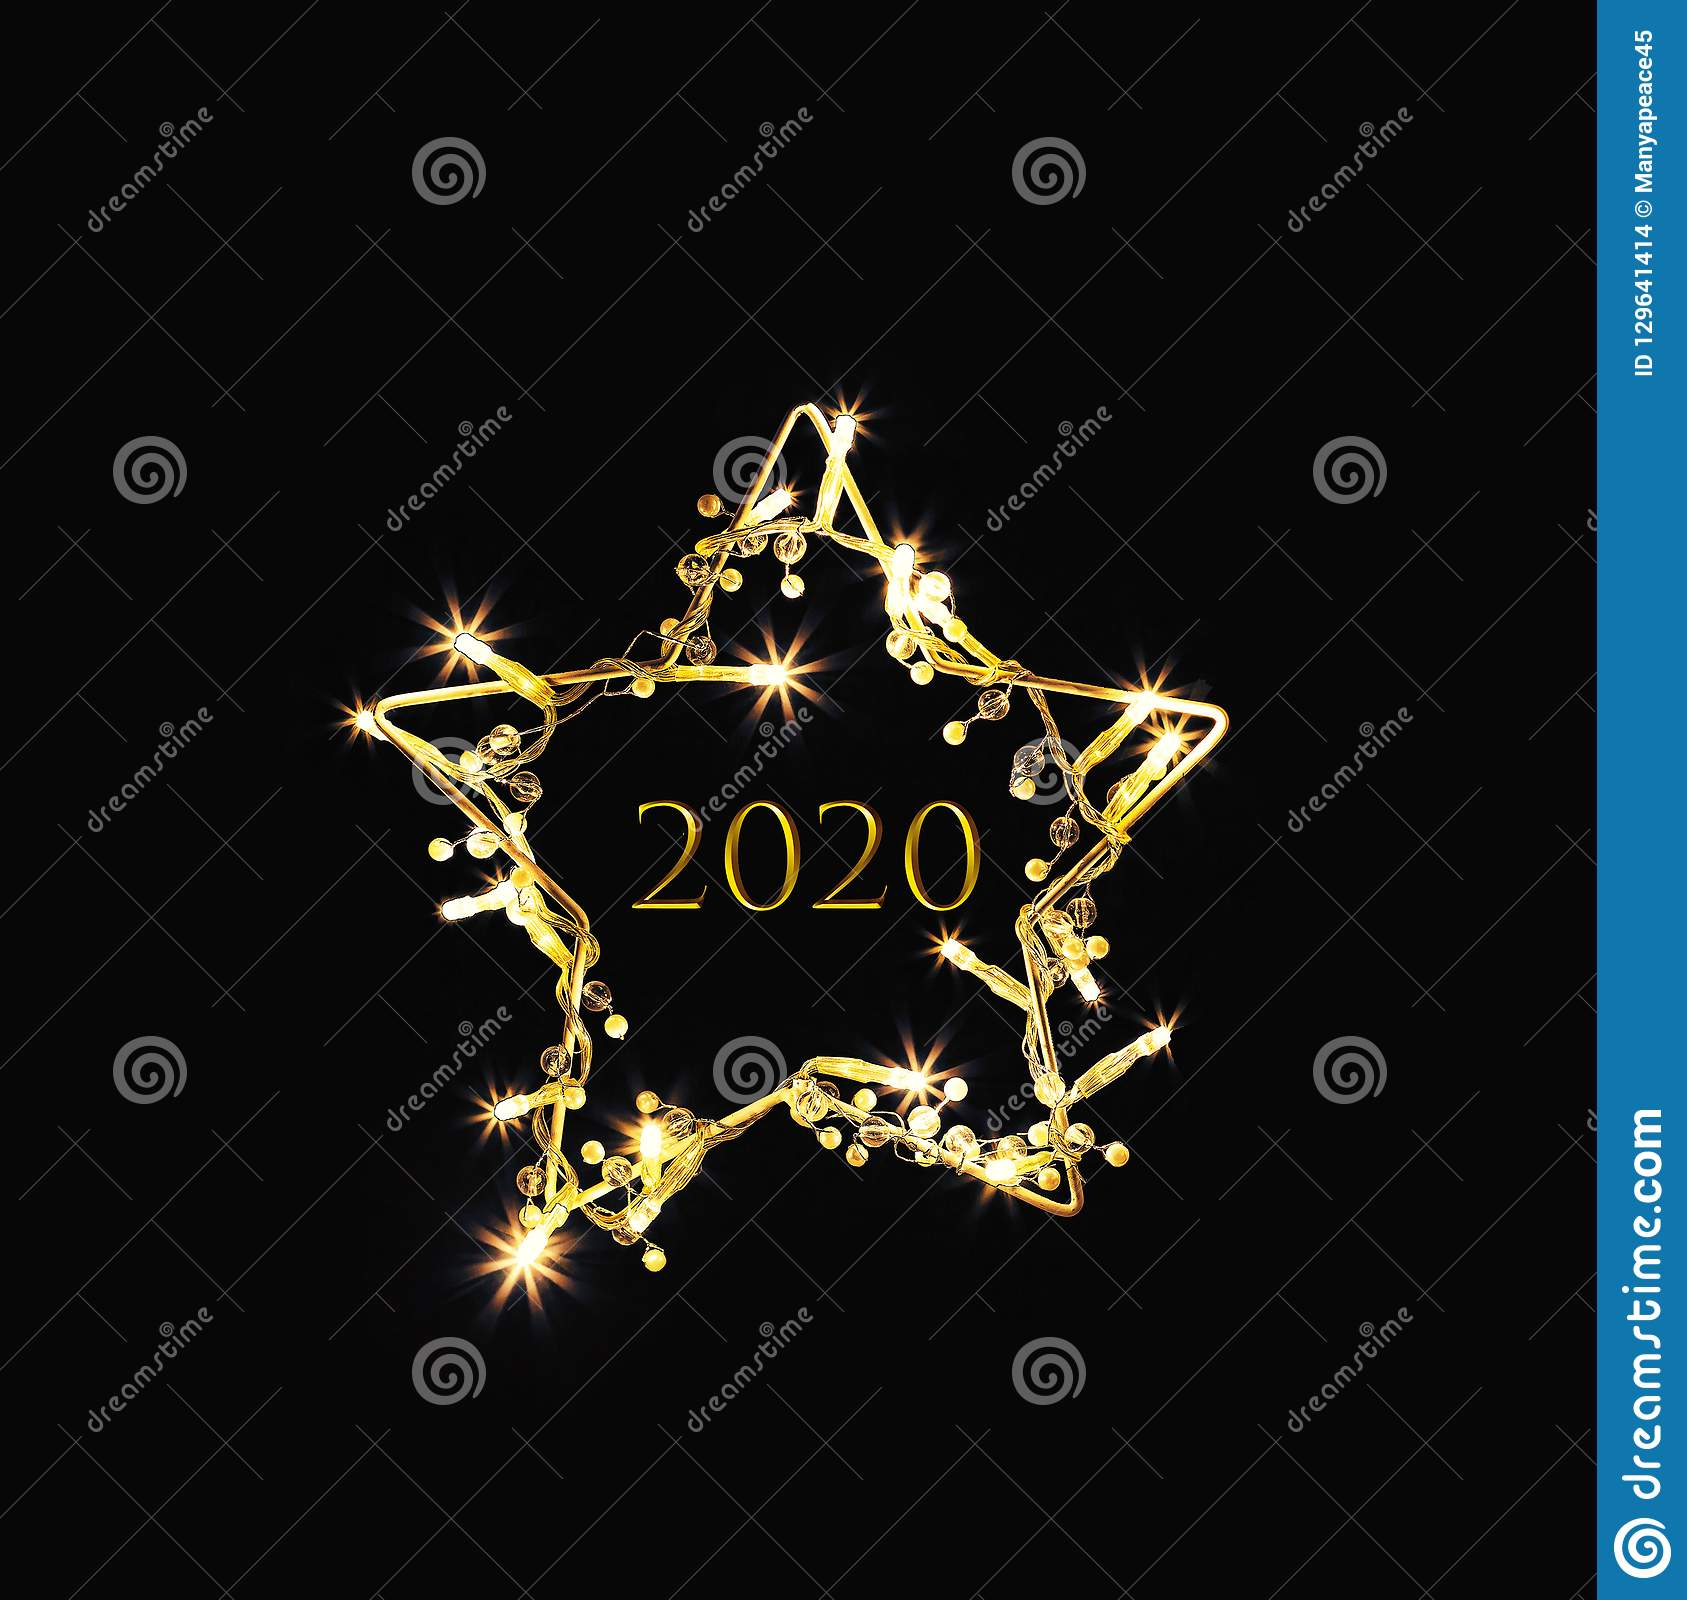 Are The Stock Market Open Monday Christmas Eve 2020 Stock Market Schedule Christmas Eve 2020 | Atfwhe.newyearland2020.info